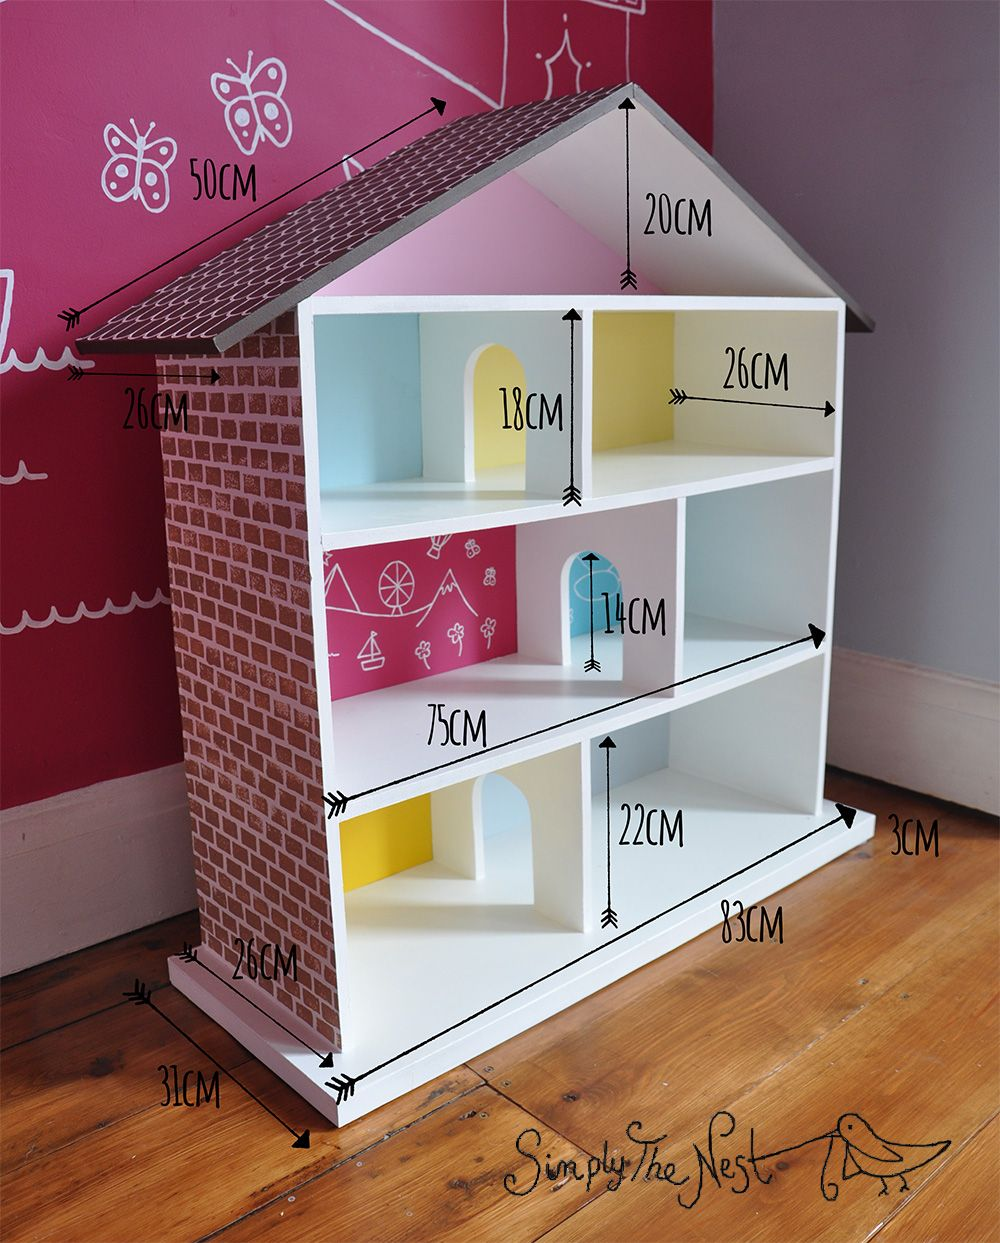 diy maison de poup e construire soi m me a diy dollhouse project by simply the nest a uk. Black Bedroom Furniture Sets. Home Design Ideas